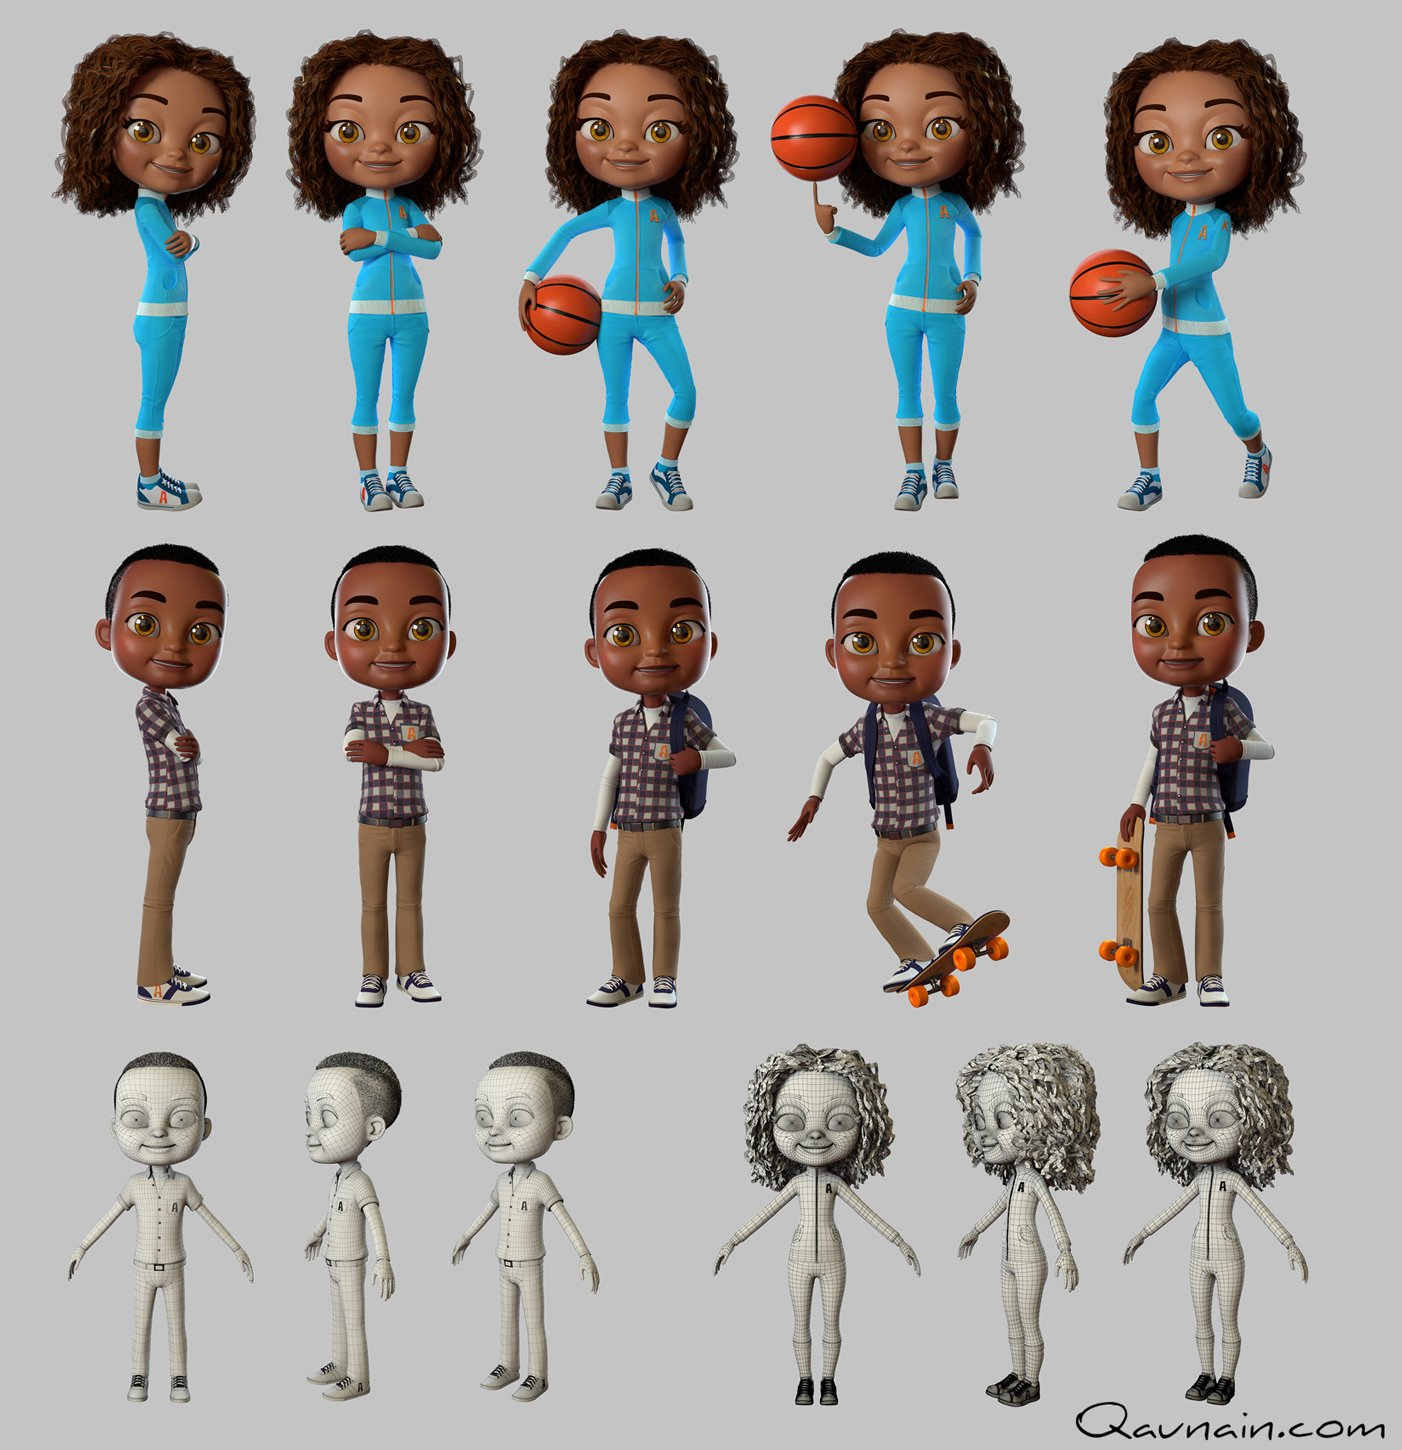 3D Characters for Branding